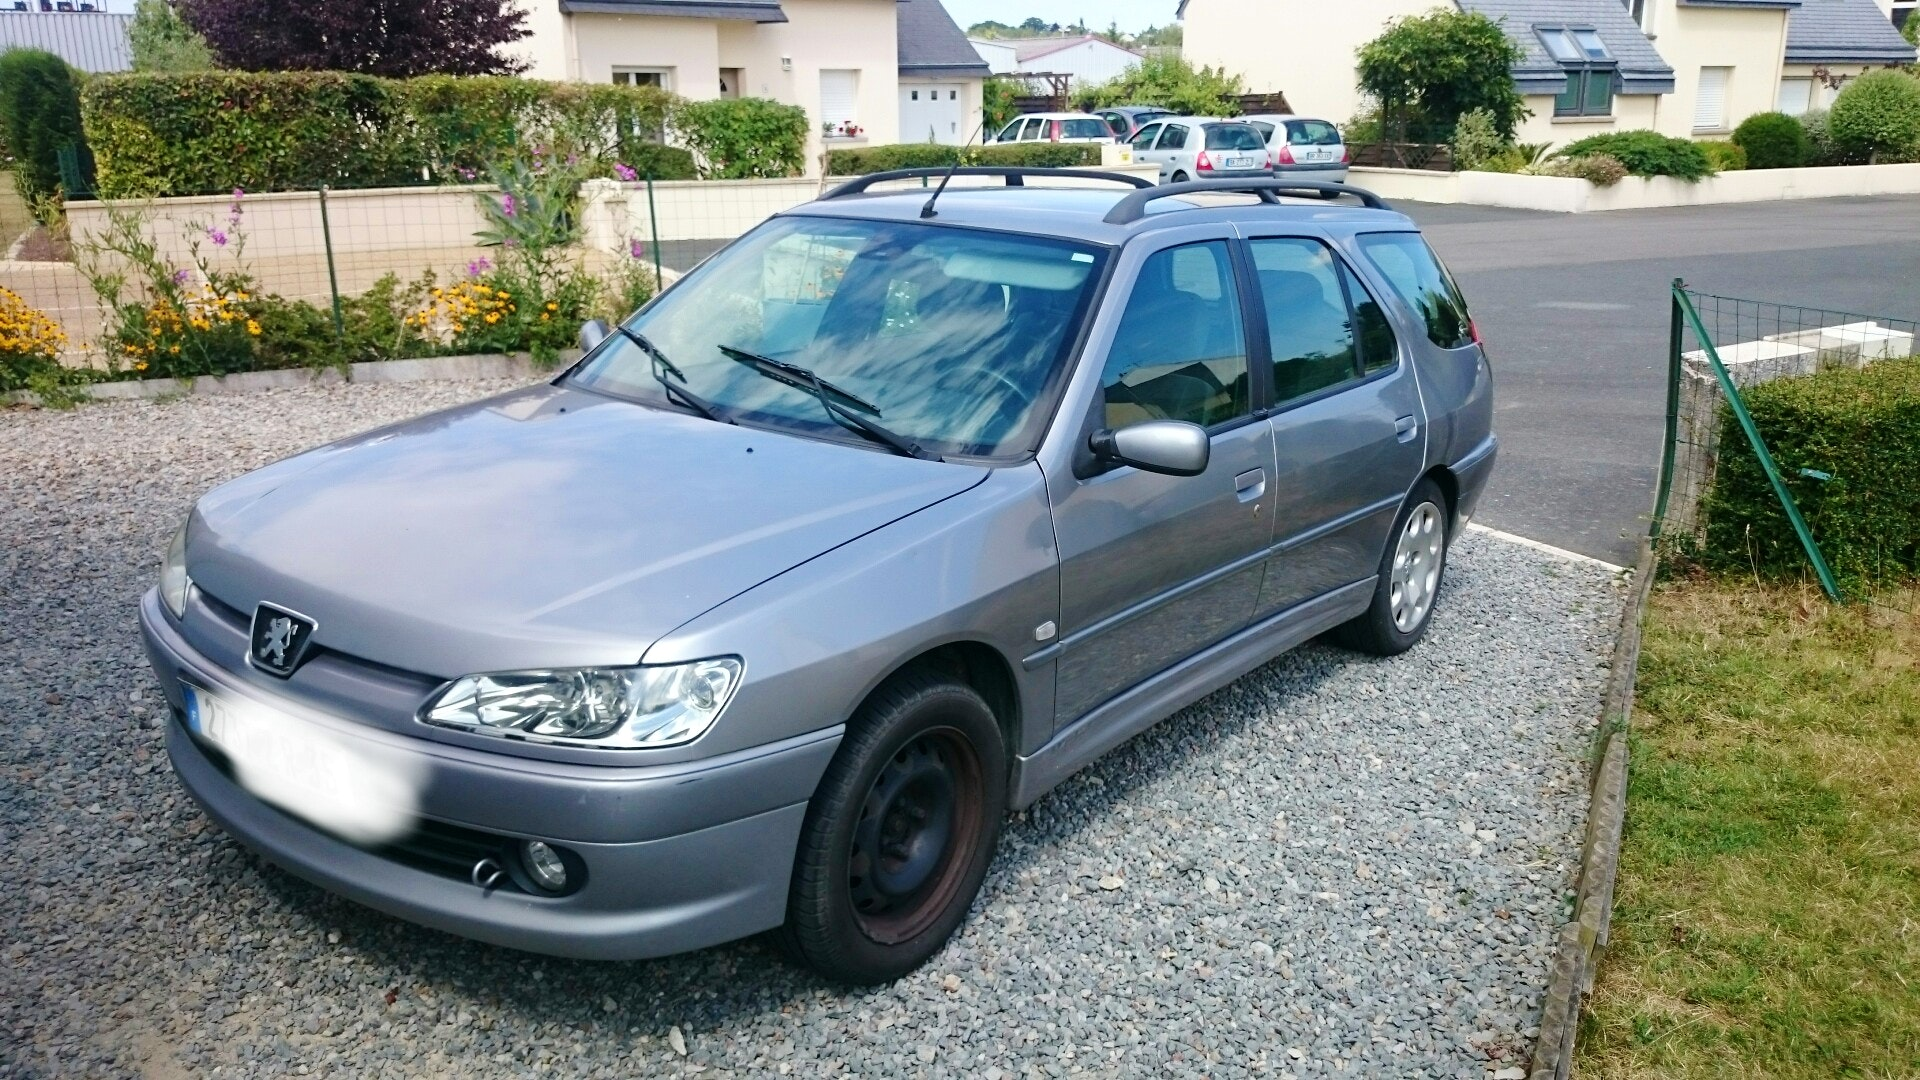 Peugeot 306 break, 2001, Diesel - Berline Janzé (35)